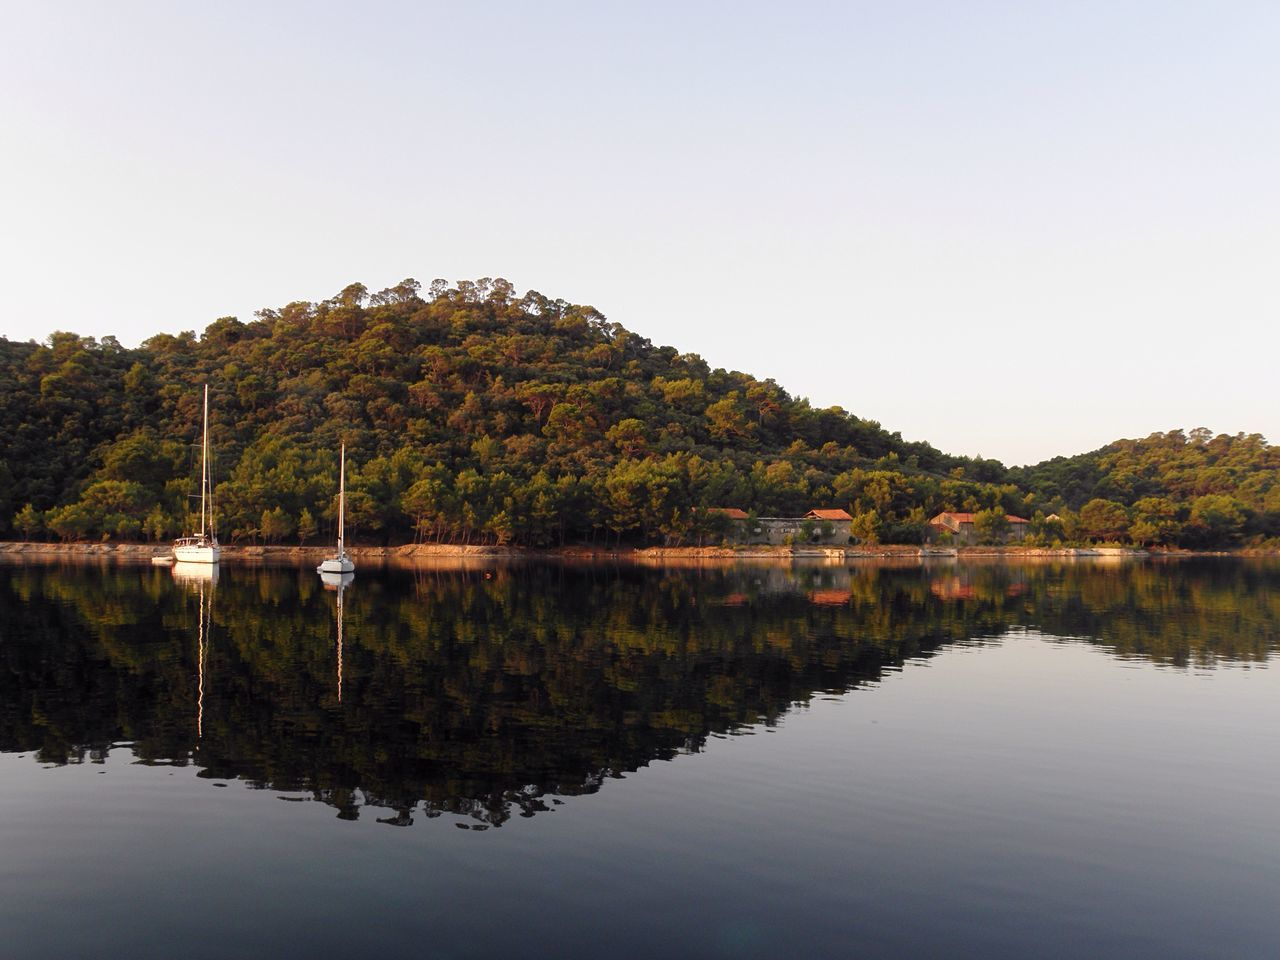 Reflection Water Nature Tree Croatia Scenics Outdoors Tranquil Scene Tranquility Day Sea Seascape Copy Space Mirror Calm Water Calm Sea Sailing Boat Sailing Harbour View Harbor Beauty In Nature Idyllic Waterfront No People Sky